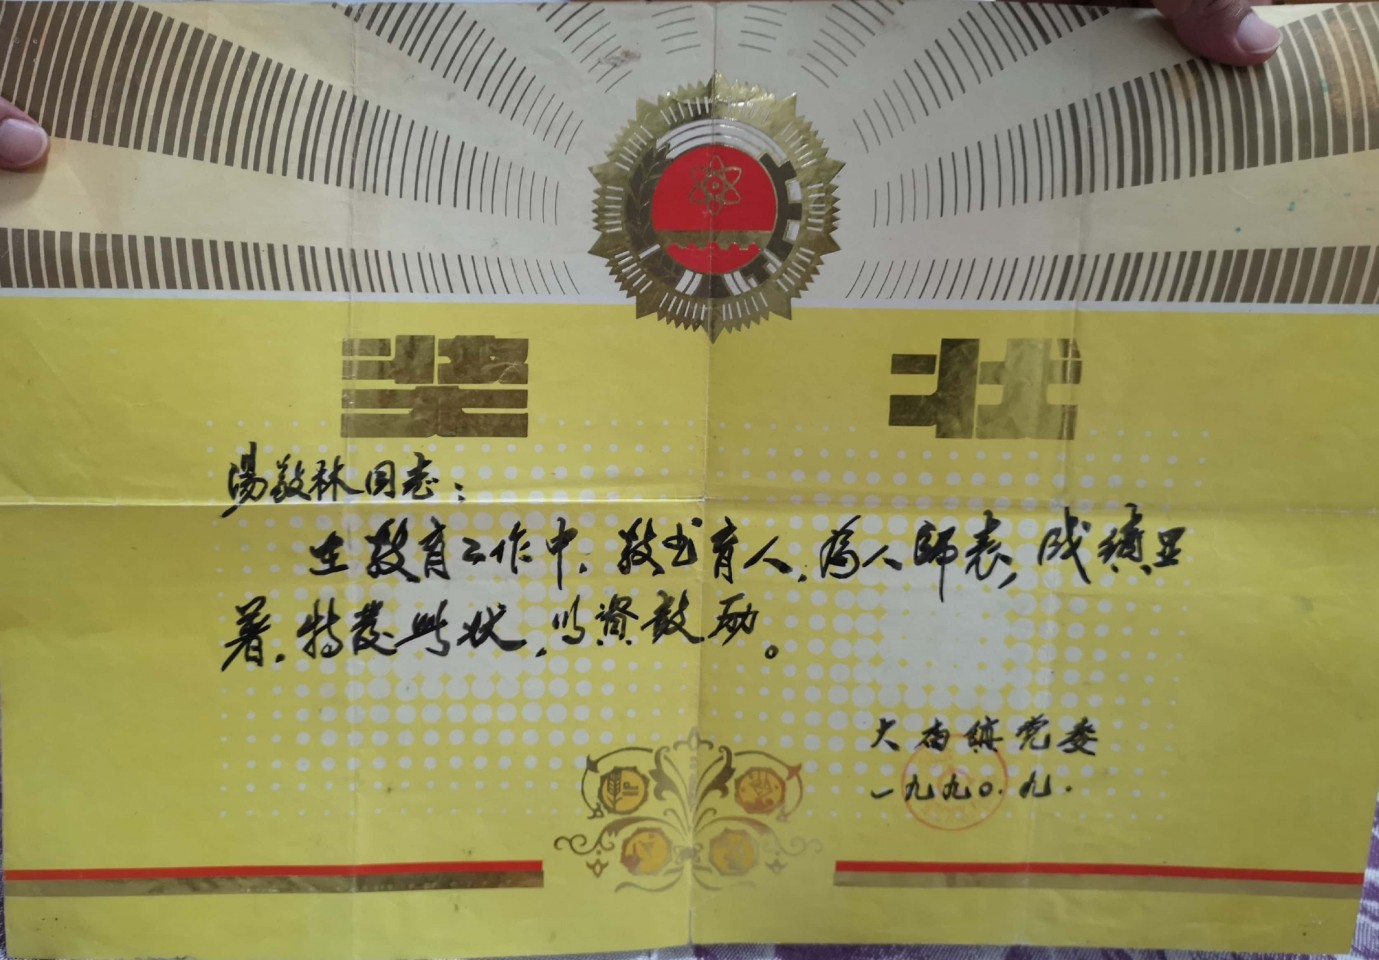 The certificate of merit received by Tang Jinglin in 1990 when he served as a literacy teacher at a part time school for farmers. He recalls that the local government had a strict system of rewards and punishments for literacy teachers. Every teacher who exceeded his assigned target in completing any literacy teaching task was rewarded with 5 yuan (about 1 Singapore dollar) for every additional student taught successfully, whereas anyone who failed to complete the assigned workload would be fined 50 yuan and barred from that time on from nomination to any important appointment. (Photo: Tang Jinglin)